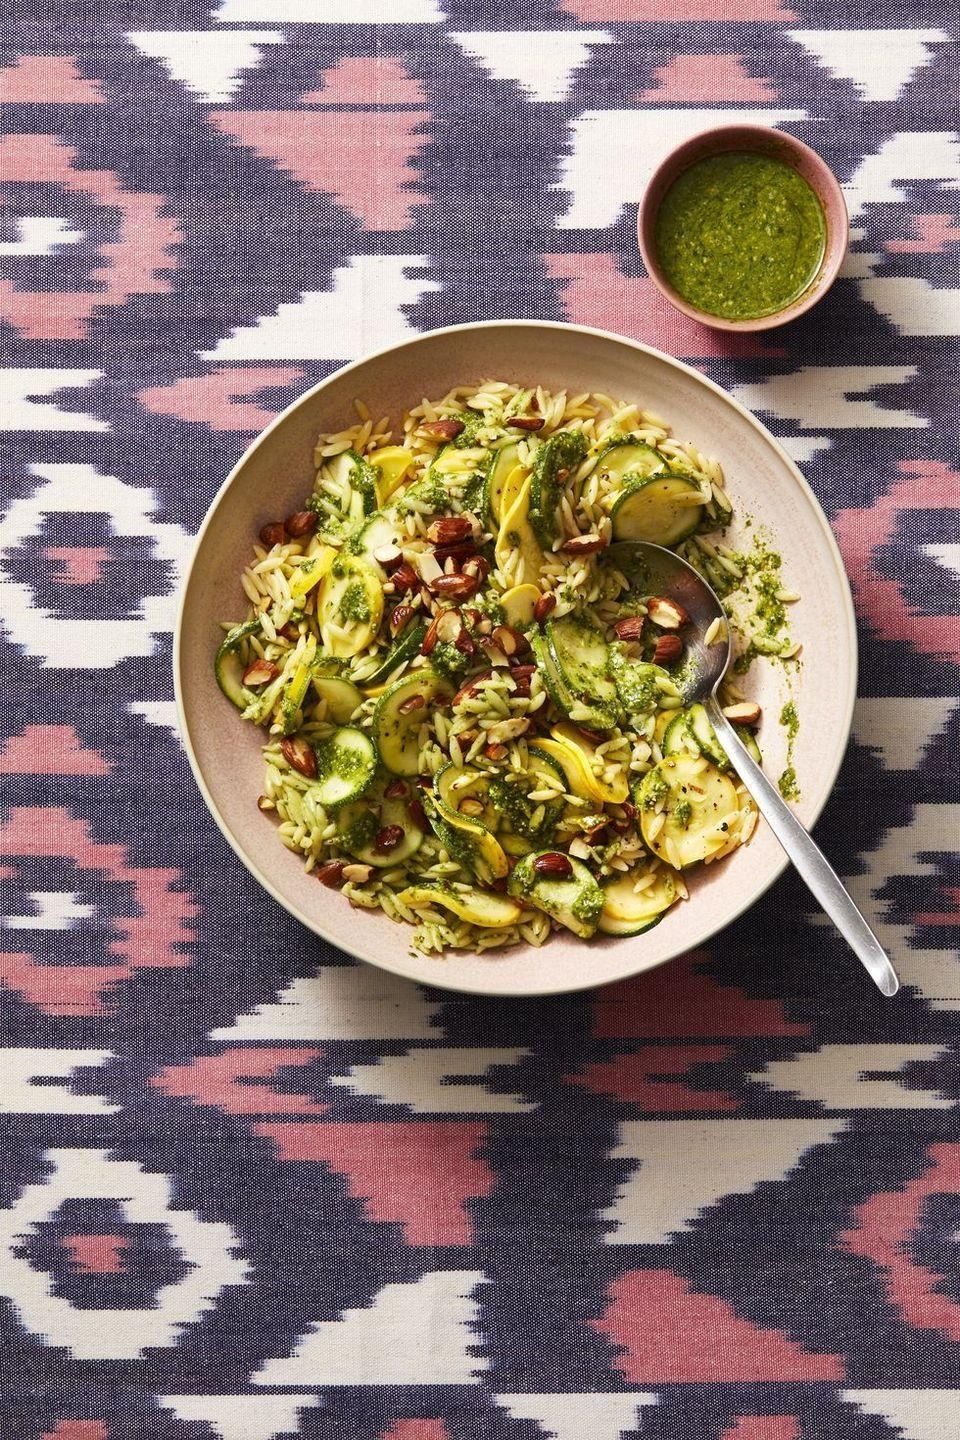 """<p>Marinating zucchini in white wine vinegar, then tossing it with pesto, really makes the summer vegetable shine. Serve it with <a href=""""https://www.goodhousekeeping.com/food-recipes/a28611486/seared-chicken-with-pesto-zucchini-orzo-recipe/"""" rel=""""nofollow noopener"""" target=""""_blank"""" data-ylk=""""slk:juicy chicken"""" class=""""link rapid-noclick-resp"""">juicy chicken</a> for a delicious main dish.</p><p><em><a href=""""https://www.goodhousekeeping.com/food-recipes/a28105024/pesto-zucchini-orzo-recipe/"""" rel=""""nofollow noopener"""" target=""""_blank"""" data-ylk=""""slk:Get the recipe for Pesto Zucchini Orzo »"""" class=""""link rapid-noclick-resp"""">Get the recipe for Pesto Zucchini Orzo »</a></em></p>"""